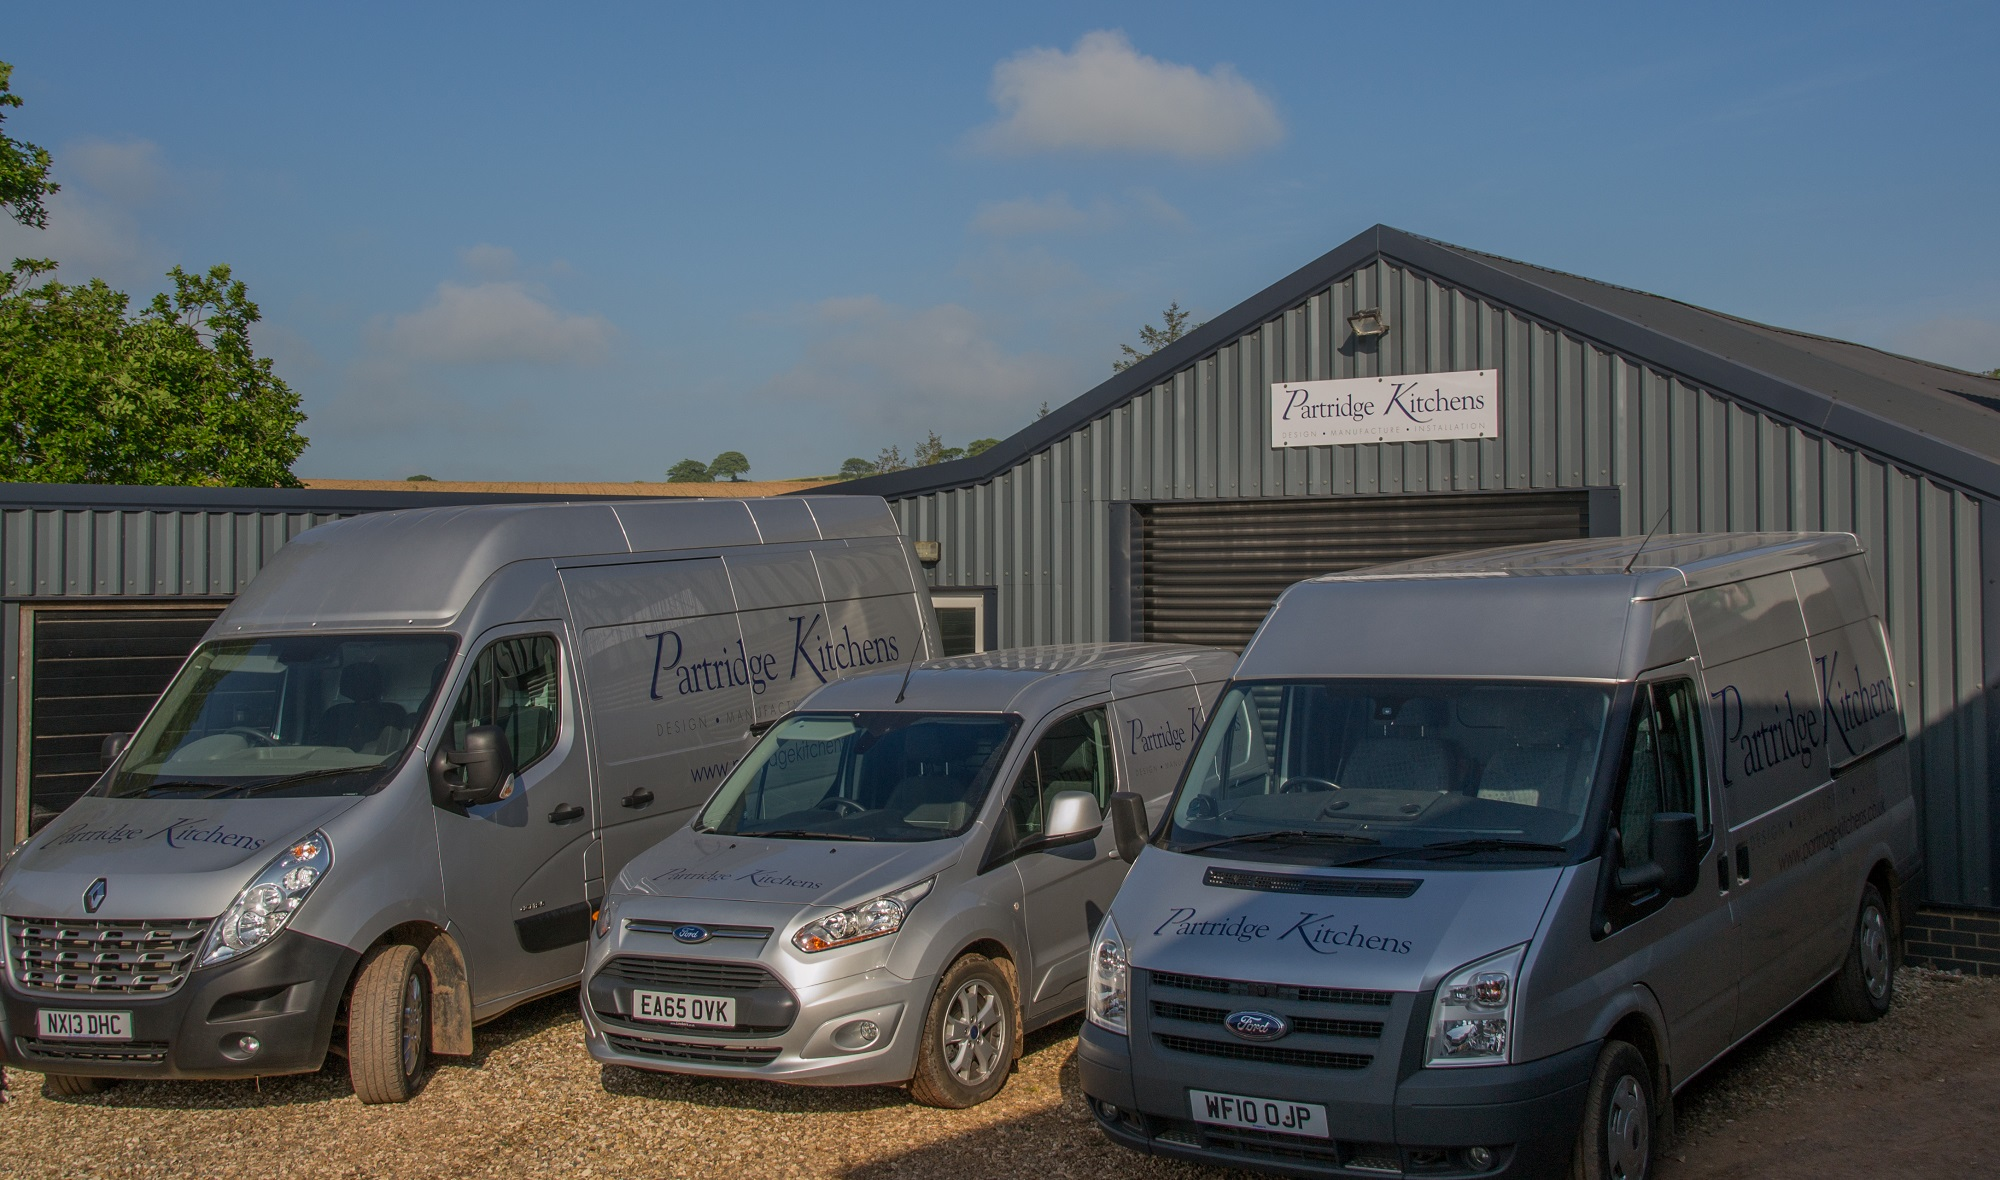 Our three vans outside the Partridge Kitchens workshop